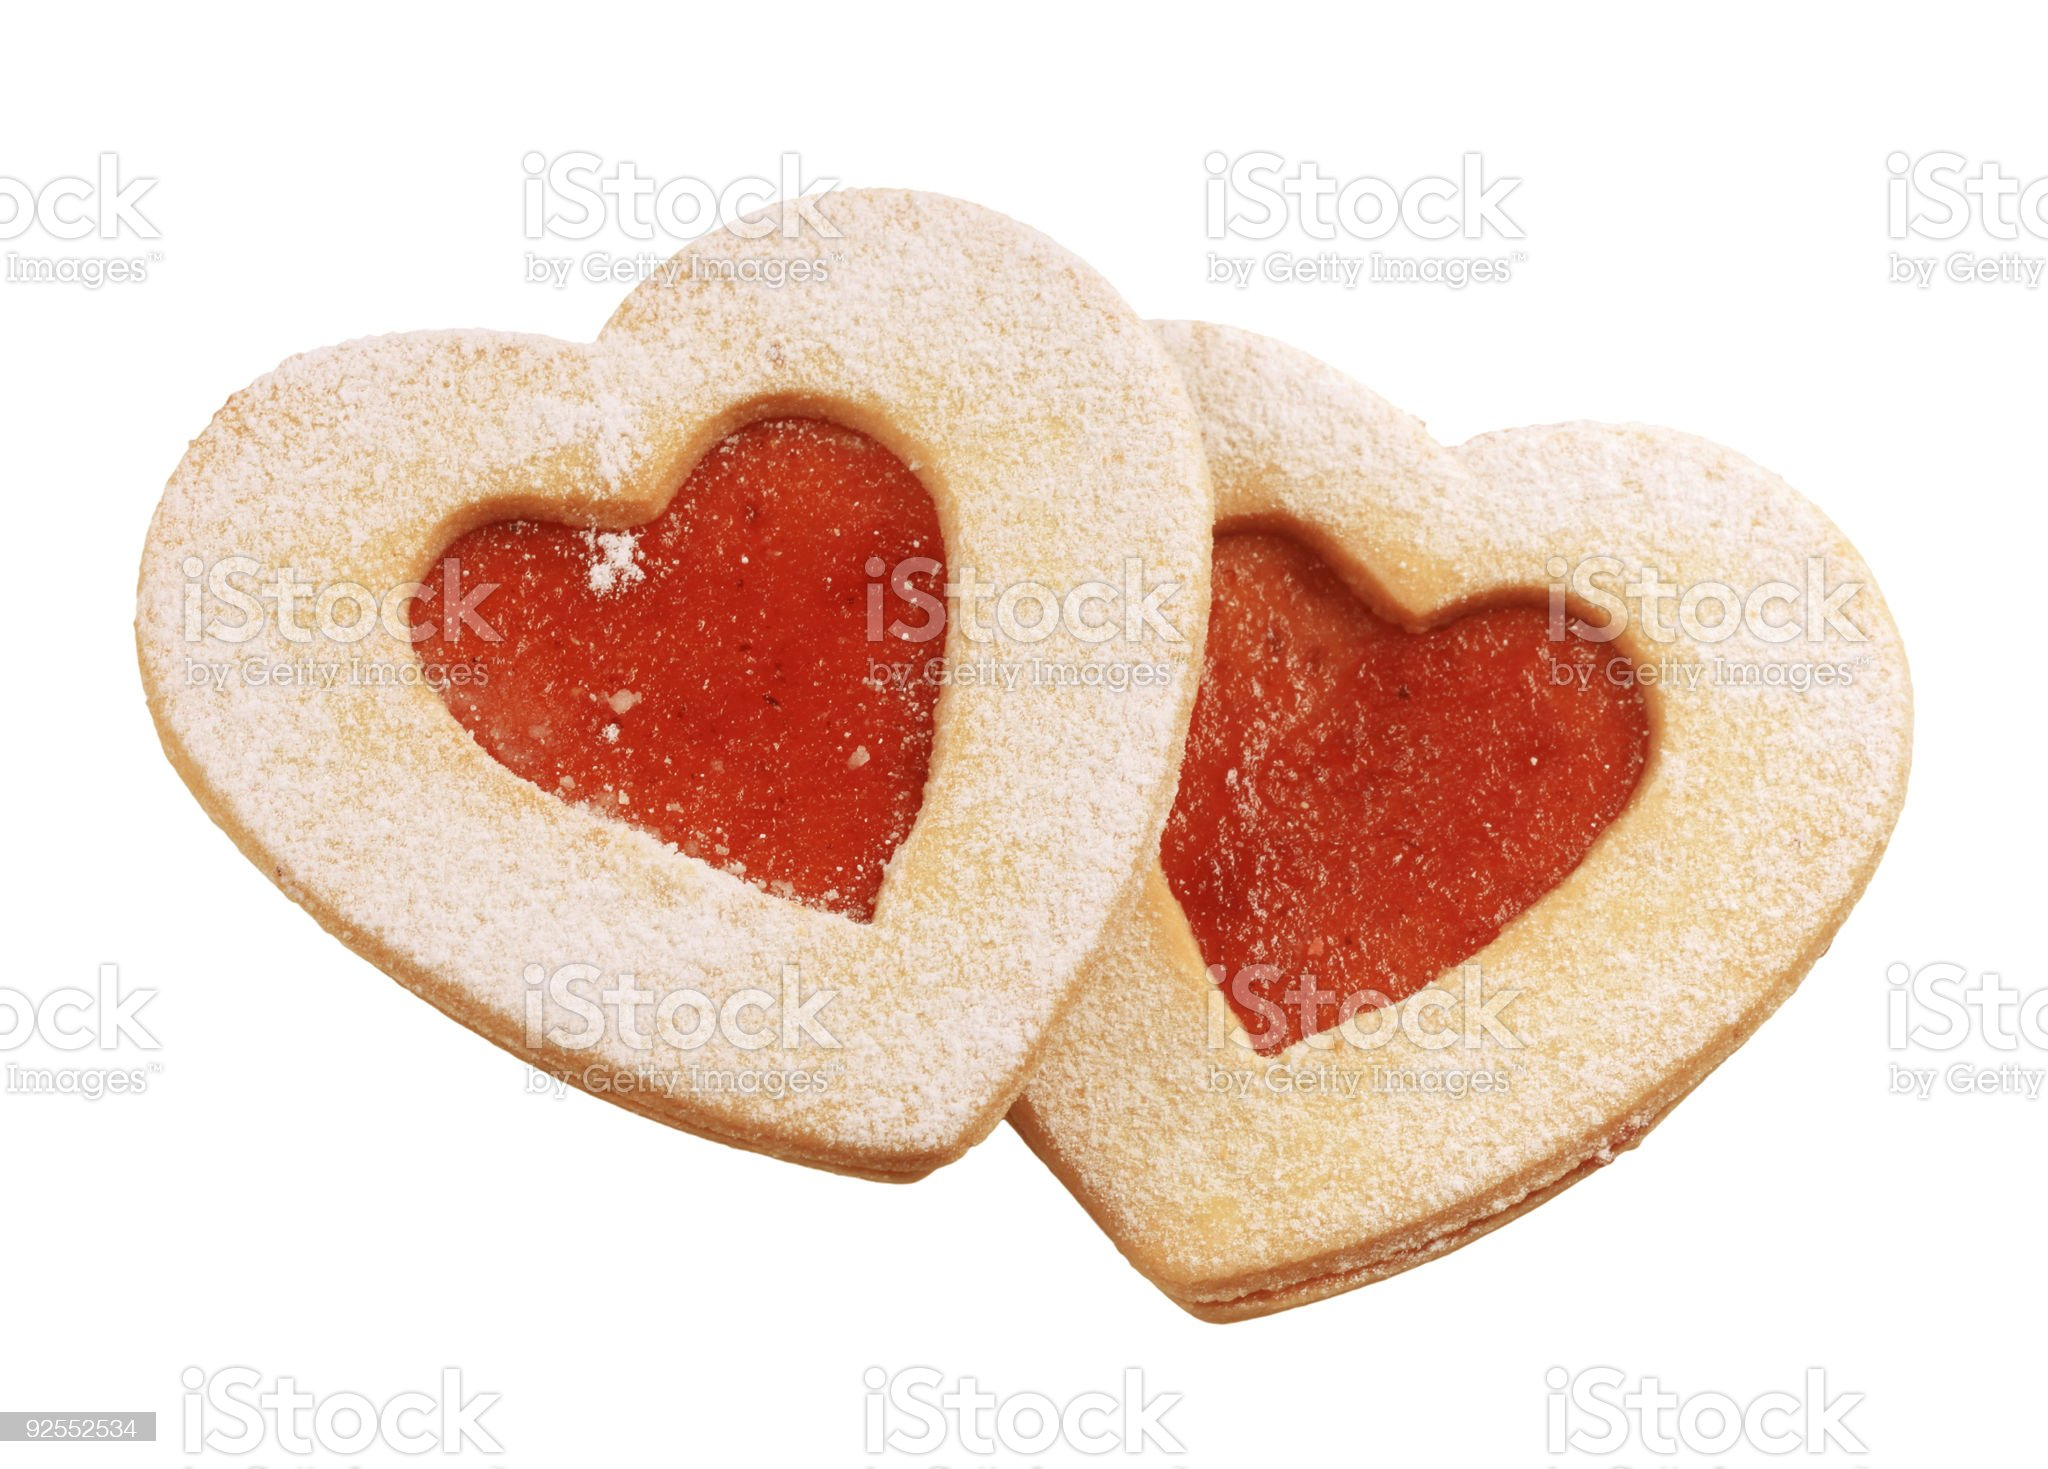 Heart shaped shortbread cookies royalty-free stock photo